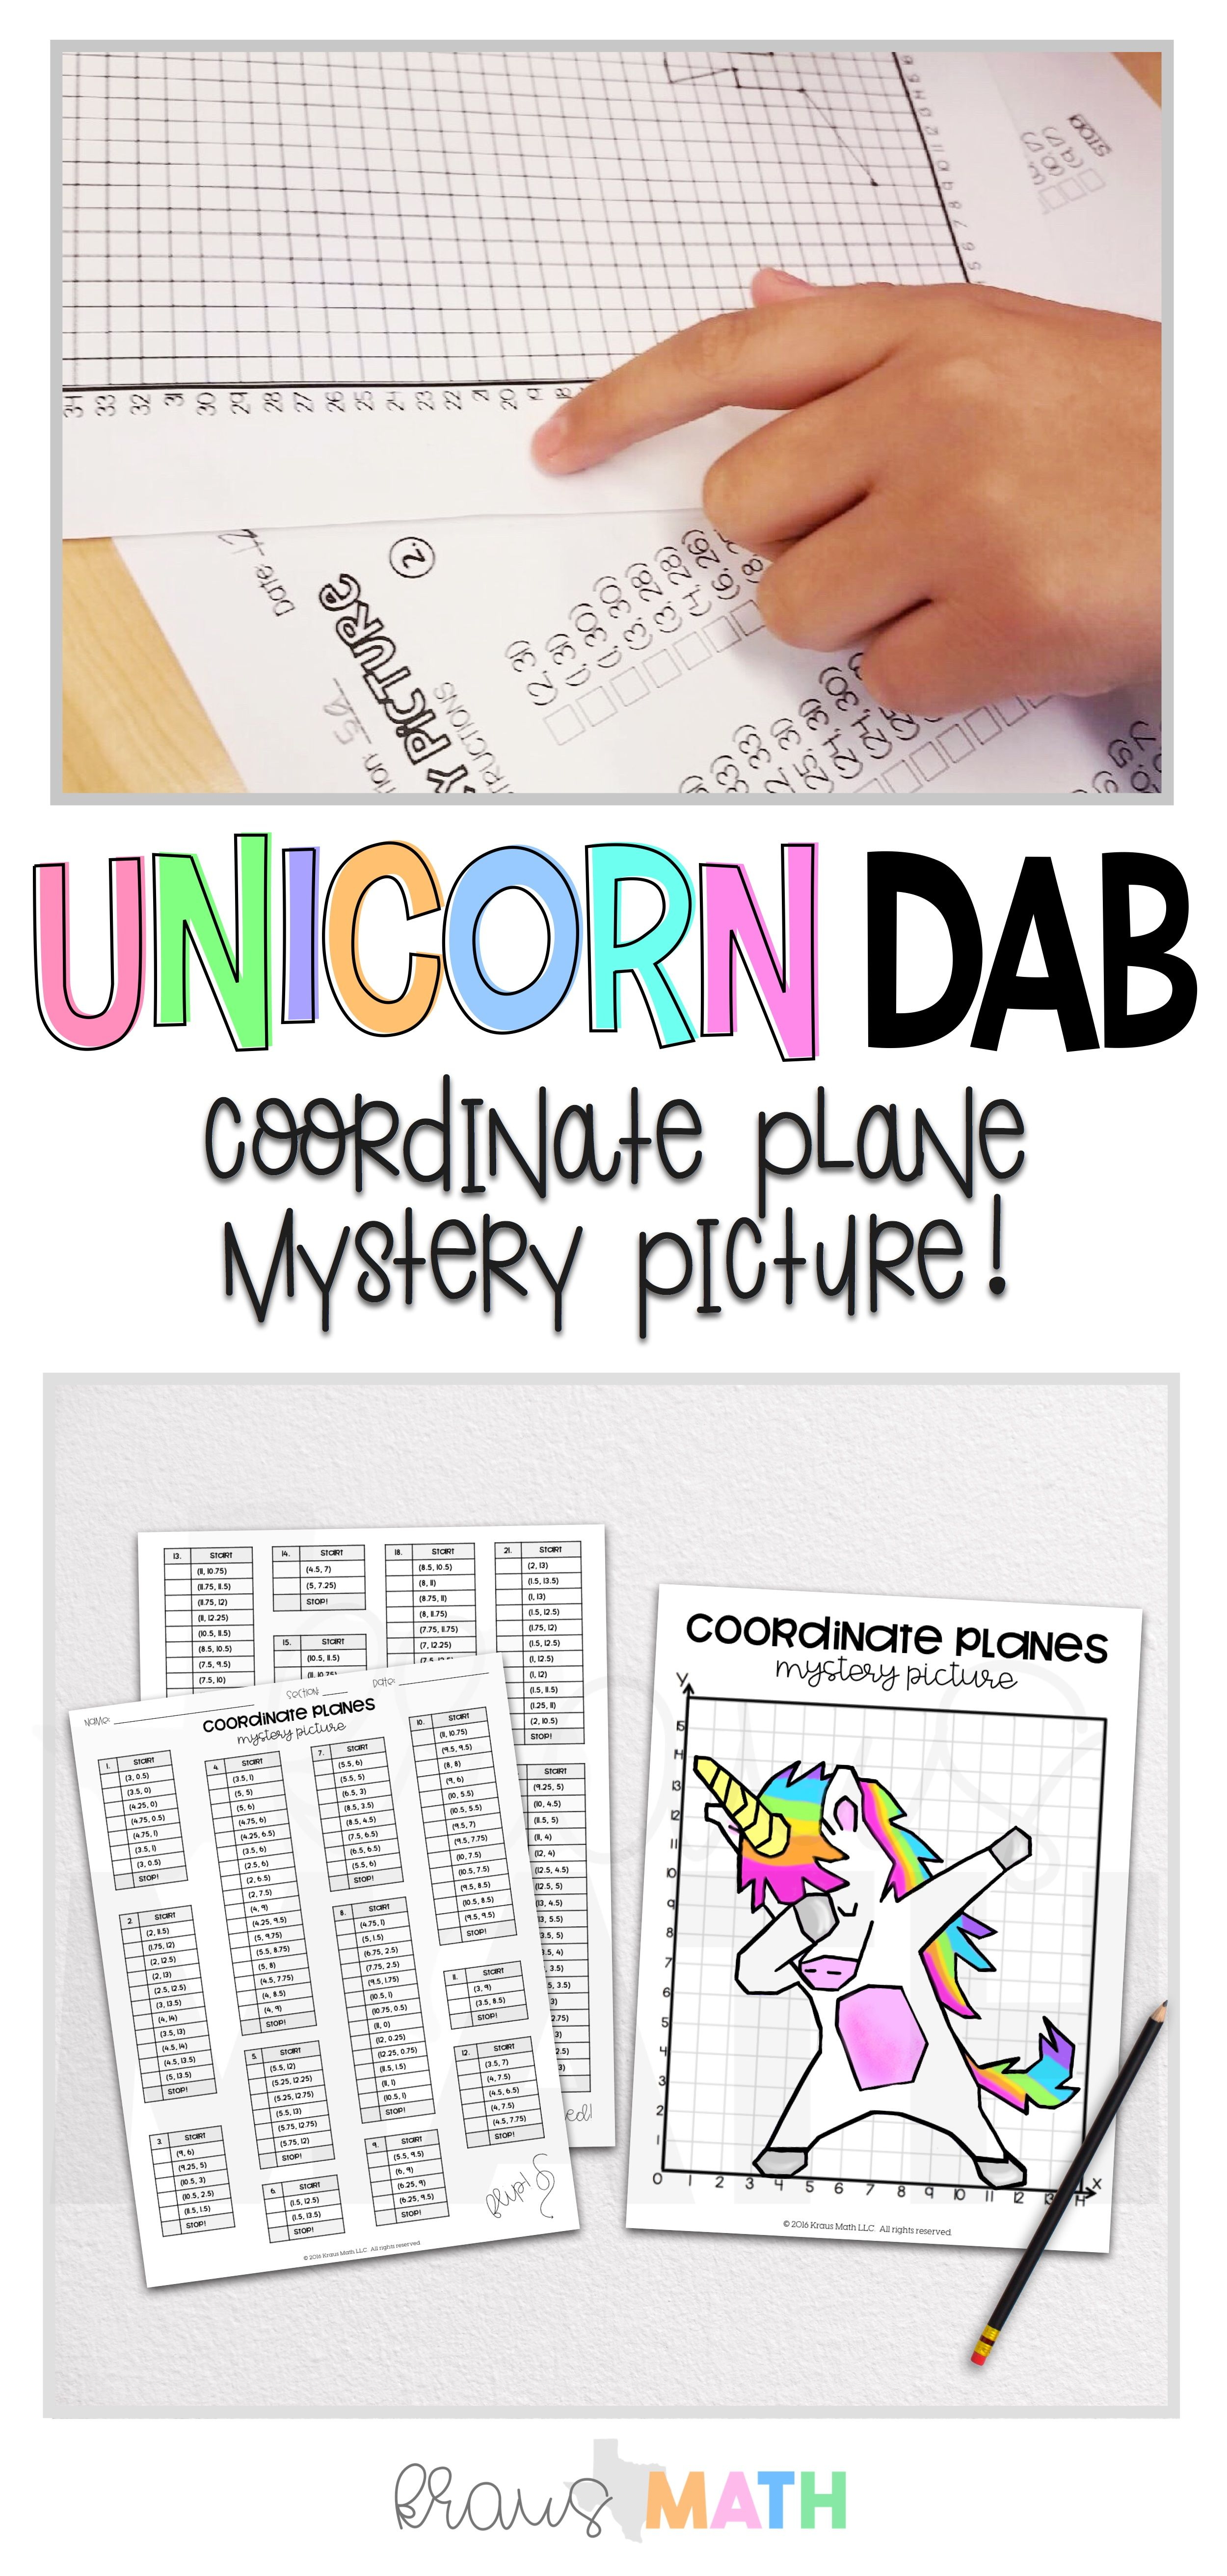 Unicorn Dab Coordinate Plane Mystery Pictures Kraus Math Coordinate Plane Graphing Activities Middle School Math [ 5250 x 2500 Pixel ]